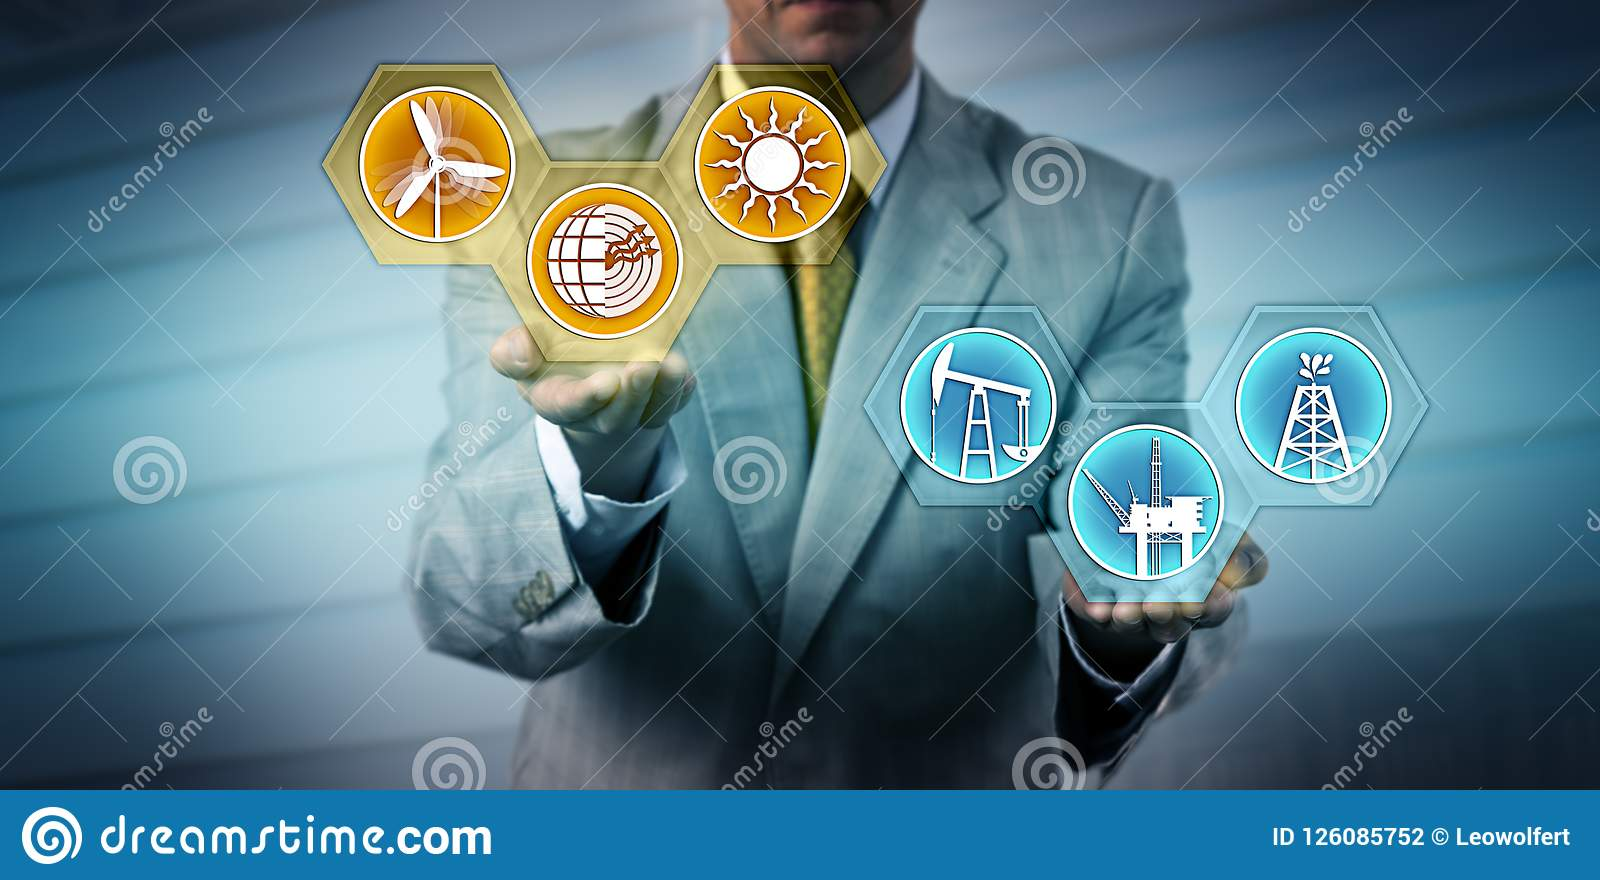 Manager Lifting Renewable Above Fossil Energy